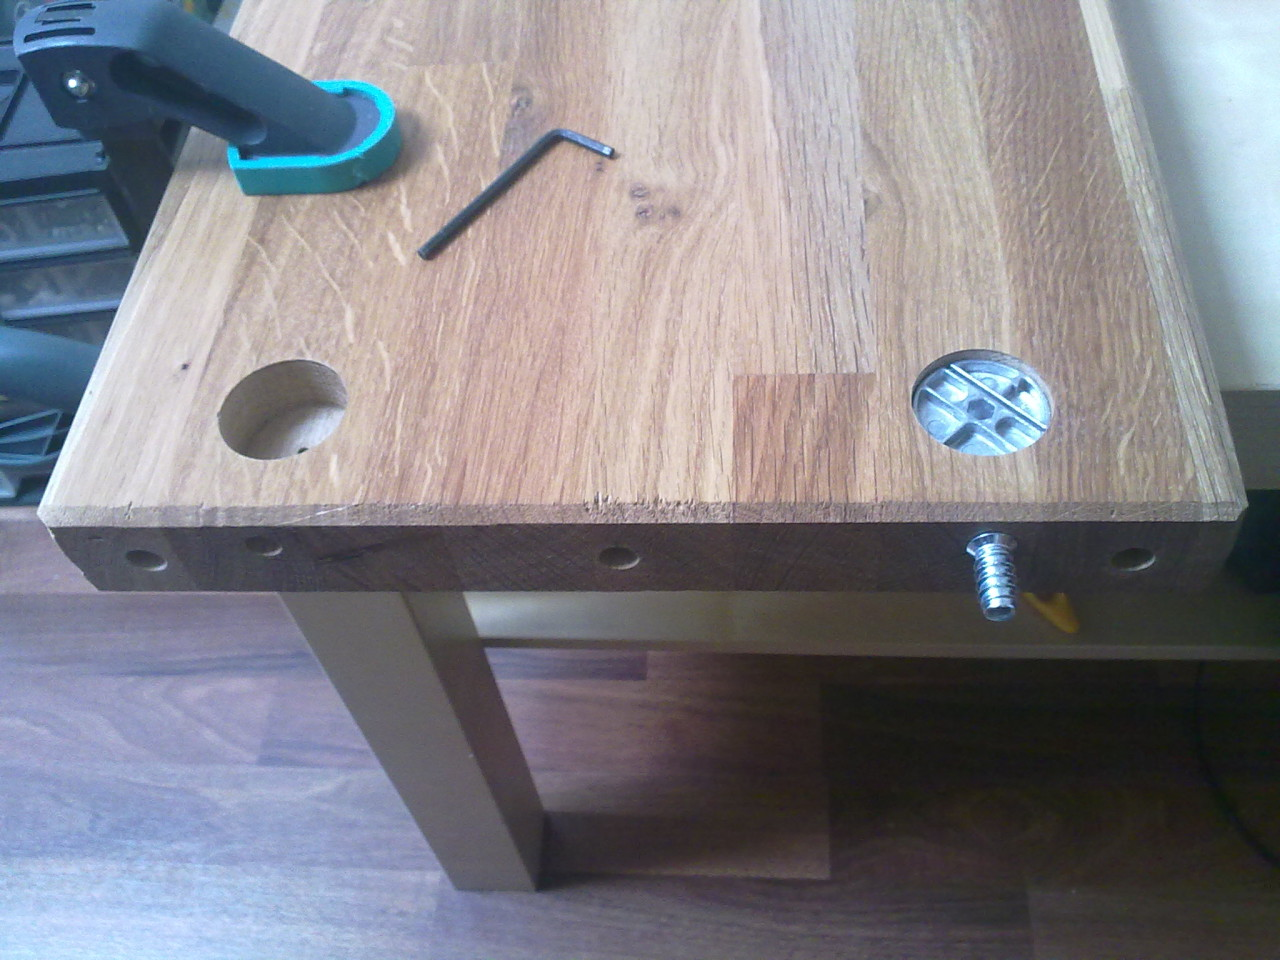 Dressing table for bedroom – mironto's DIY